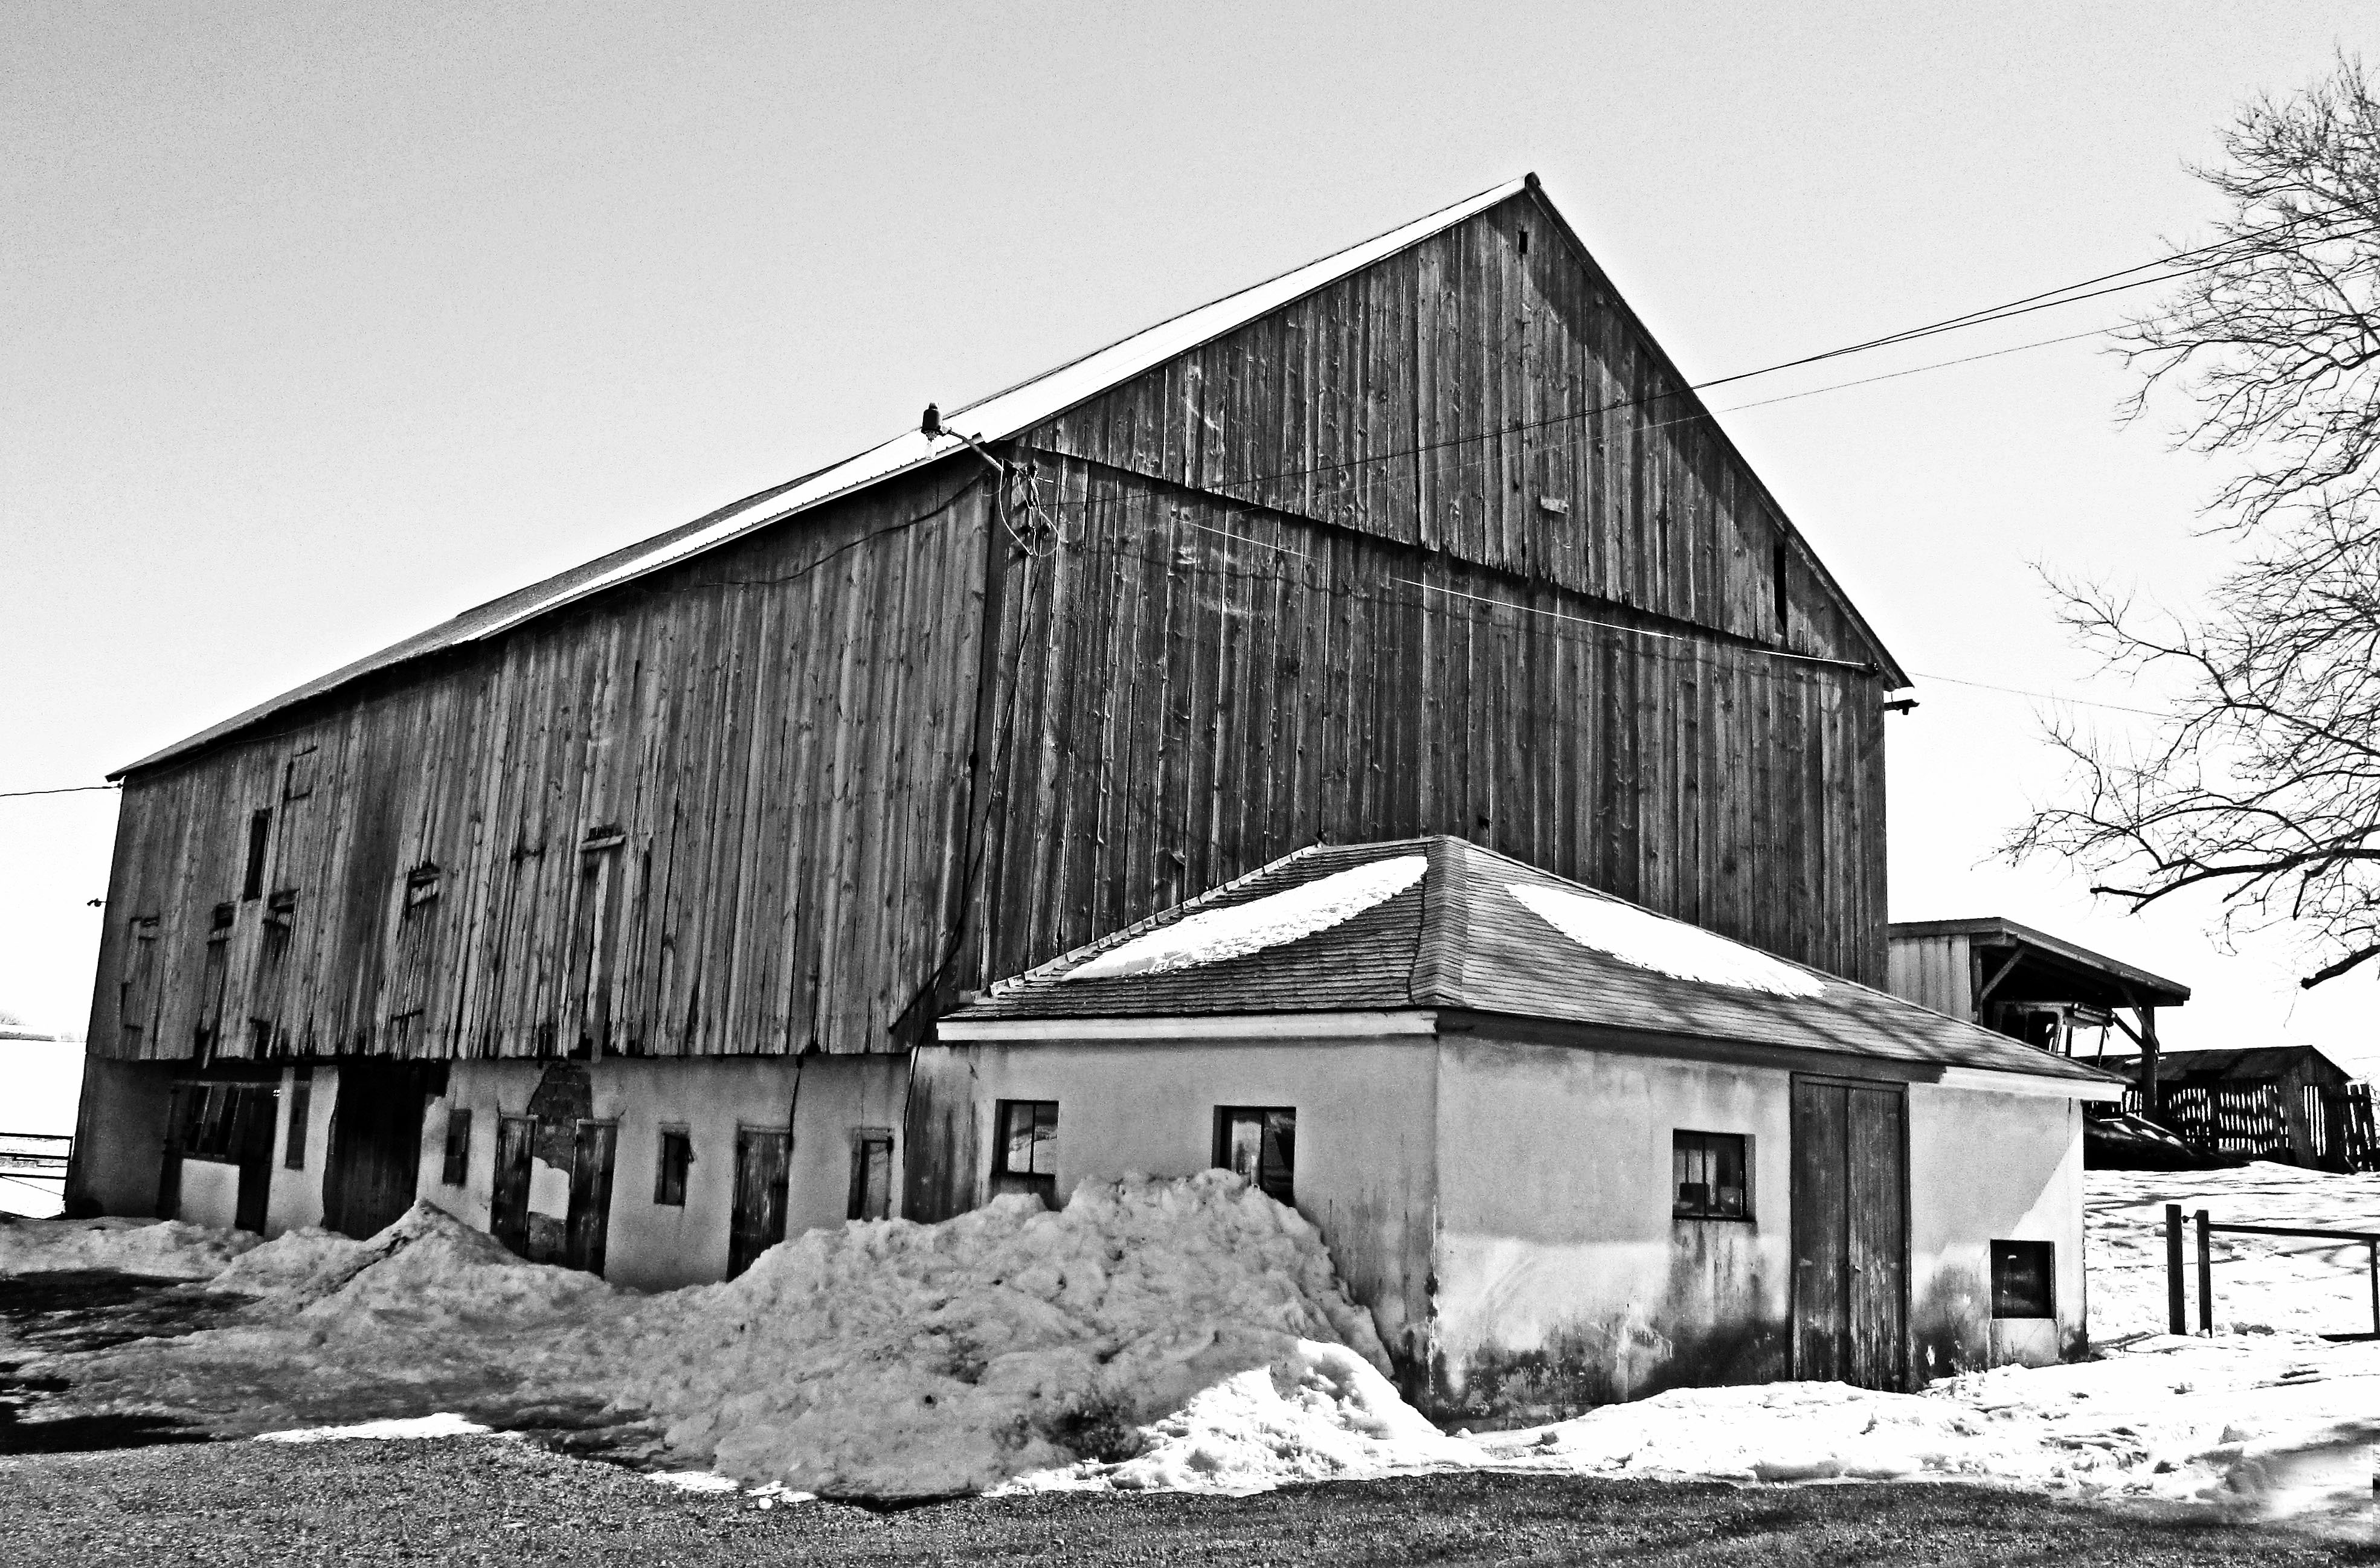 Black & White Of Abandoned Farm Structures